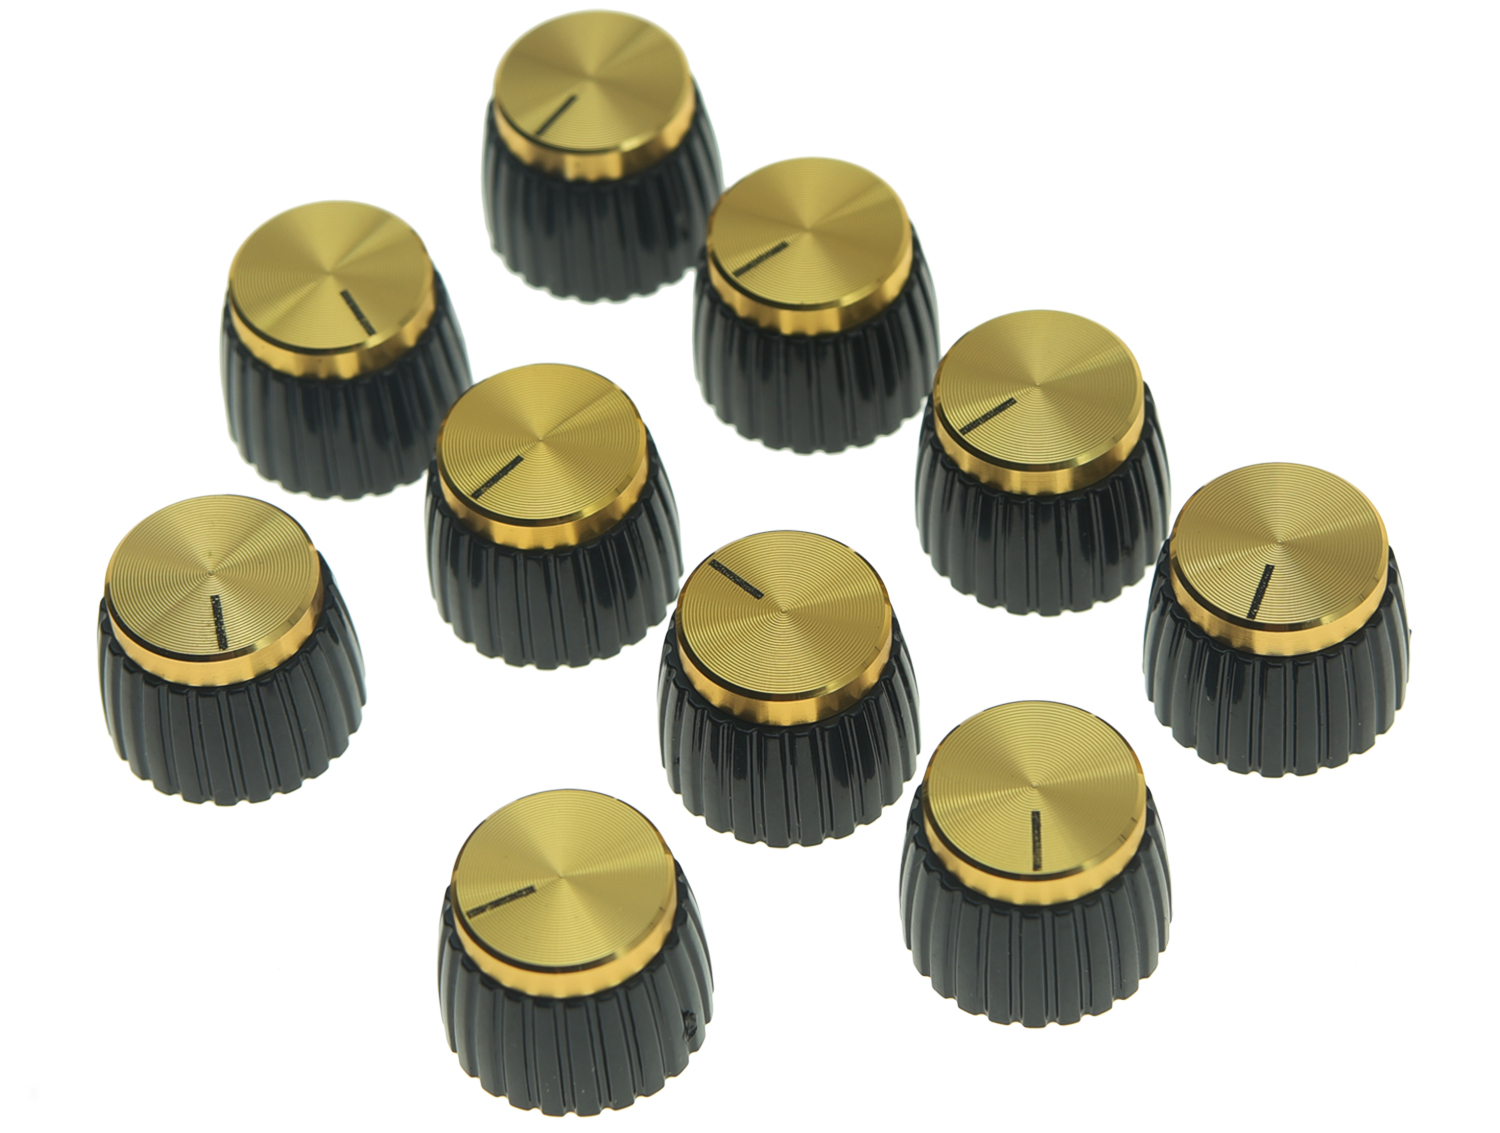 KAISH Pack of 10/20/50 pcs Guitar Amplifier Knobs Gold Cap Push On Knob fit Marshall AMP